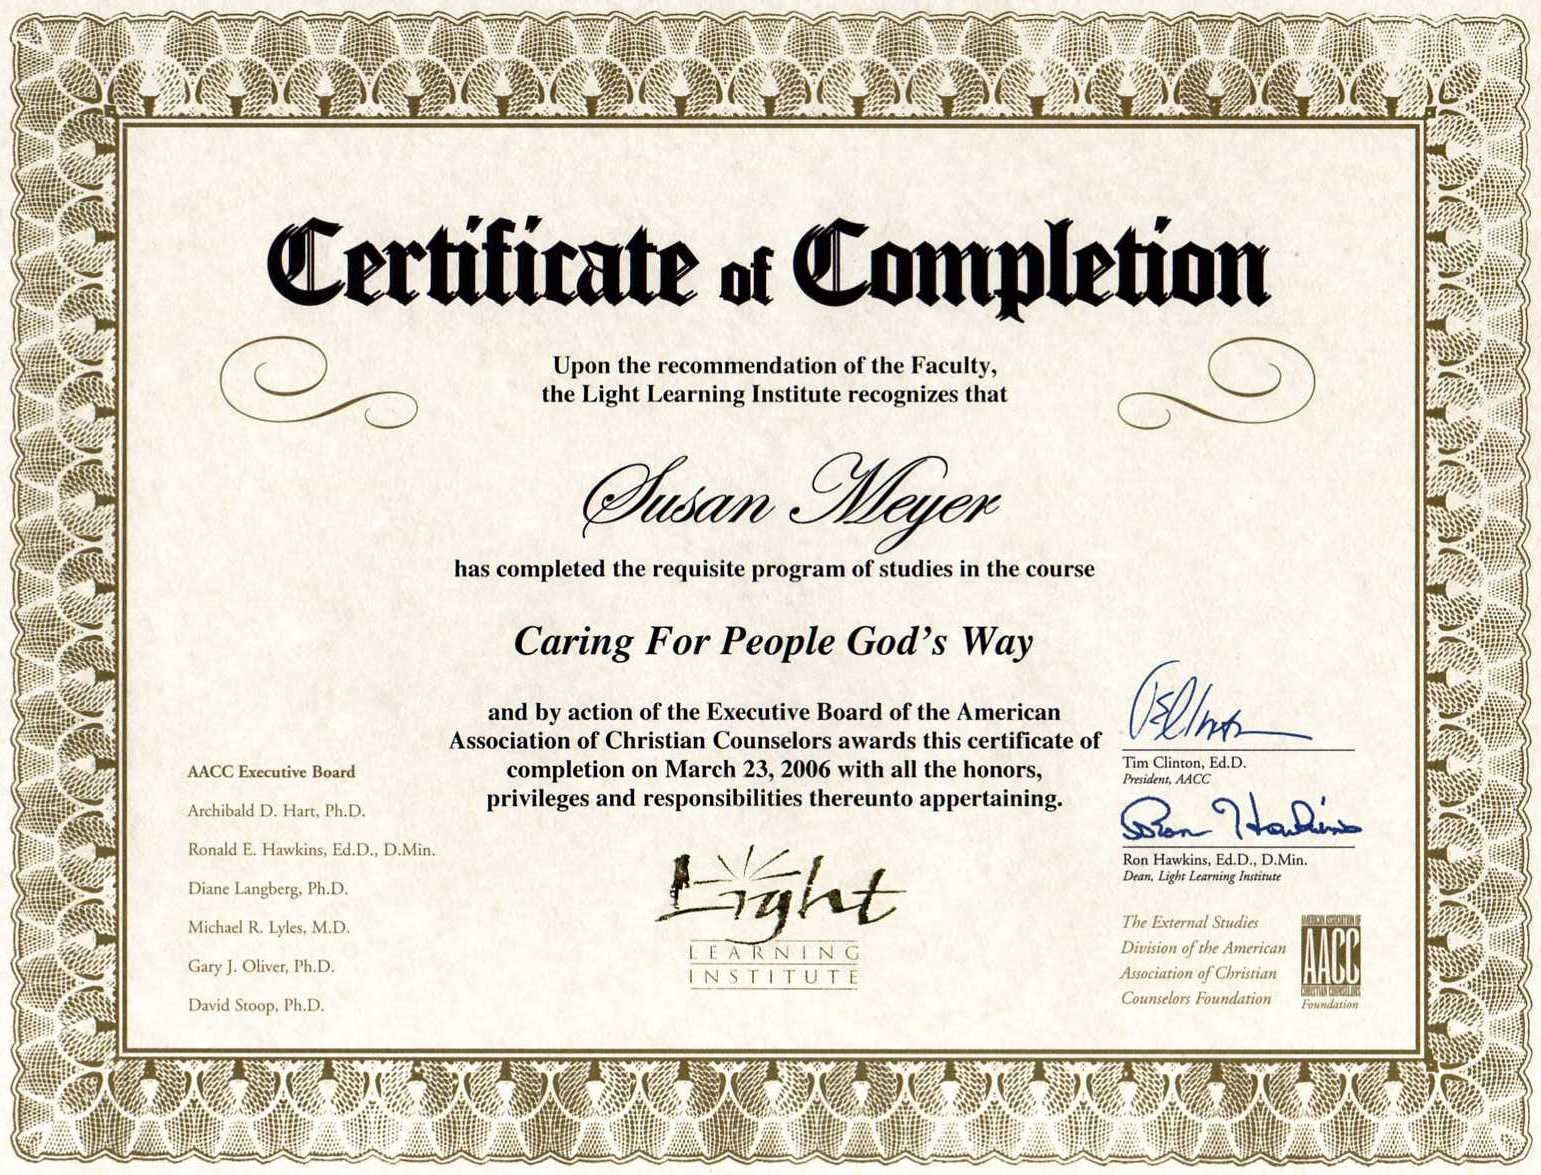 Pin By Nick Kimani On Typeface Black Letter Certificate Of Completion Template Premarital Counseling Certificate Templates Premarital counseling certificate of completion template